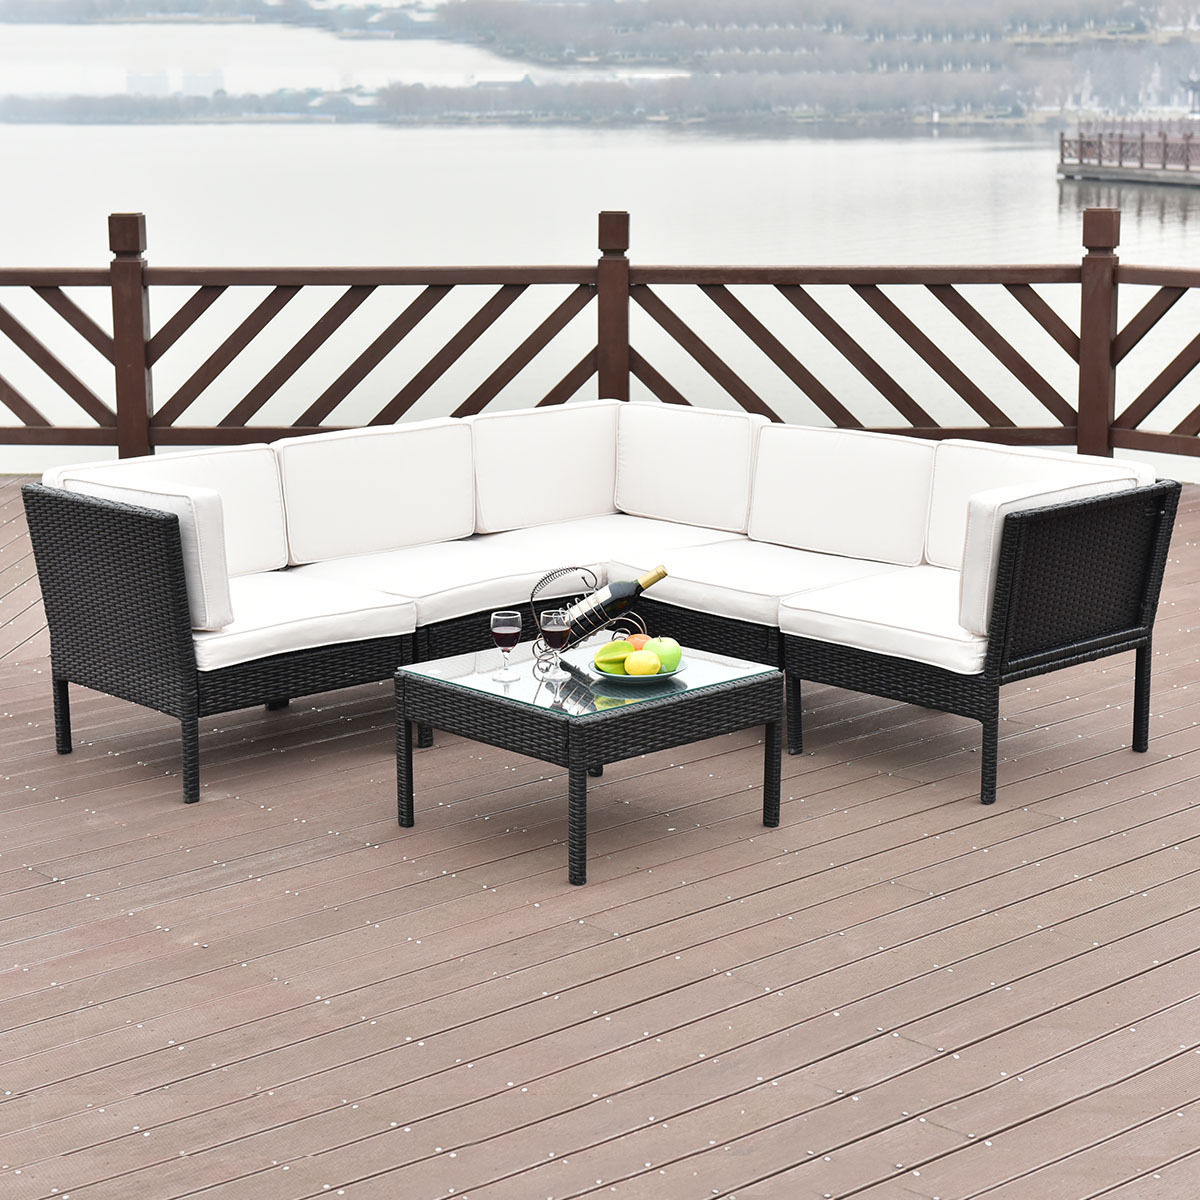 Costway 6 PCS Rattan Wicker Patio Furniture Set Steel Frame Sofa